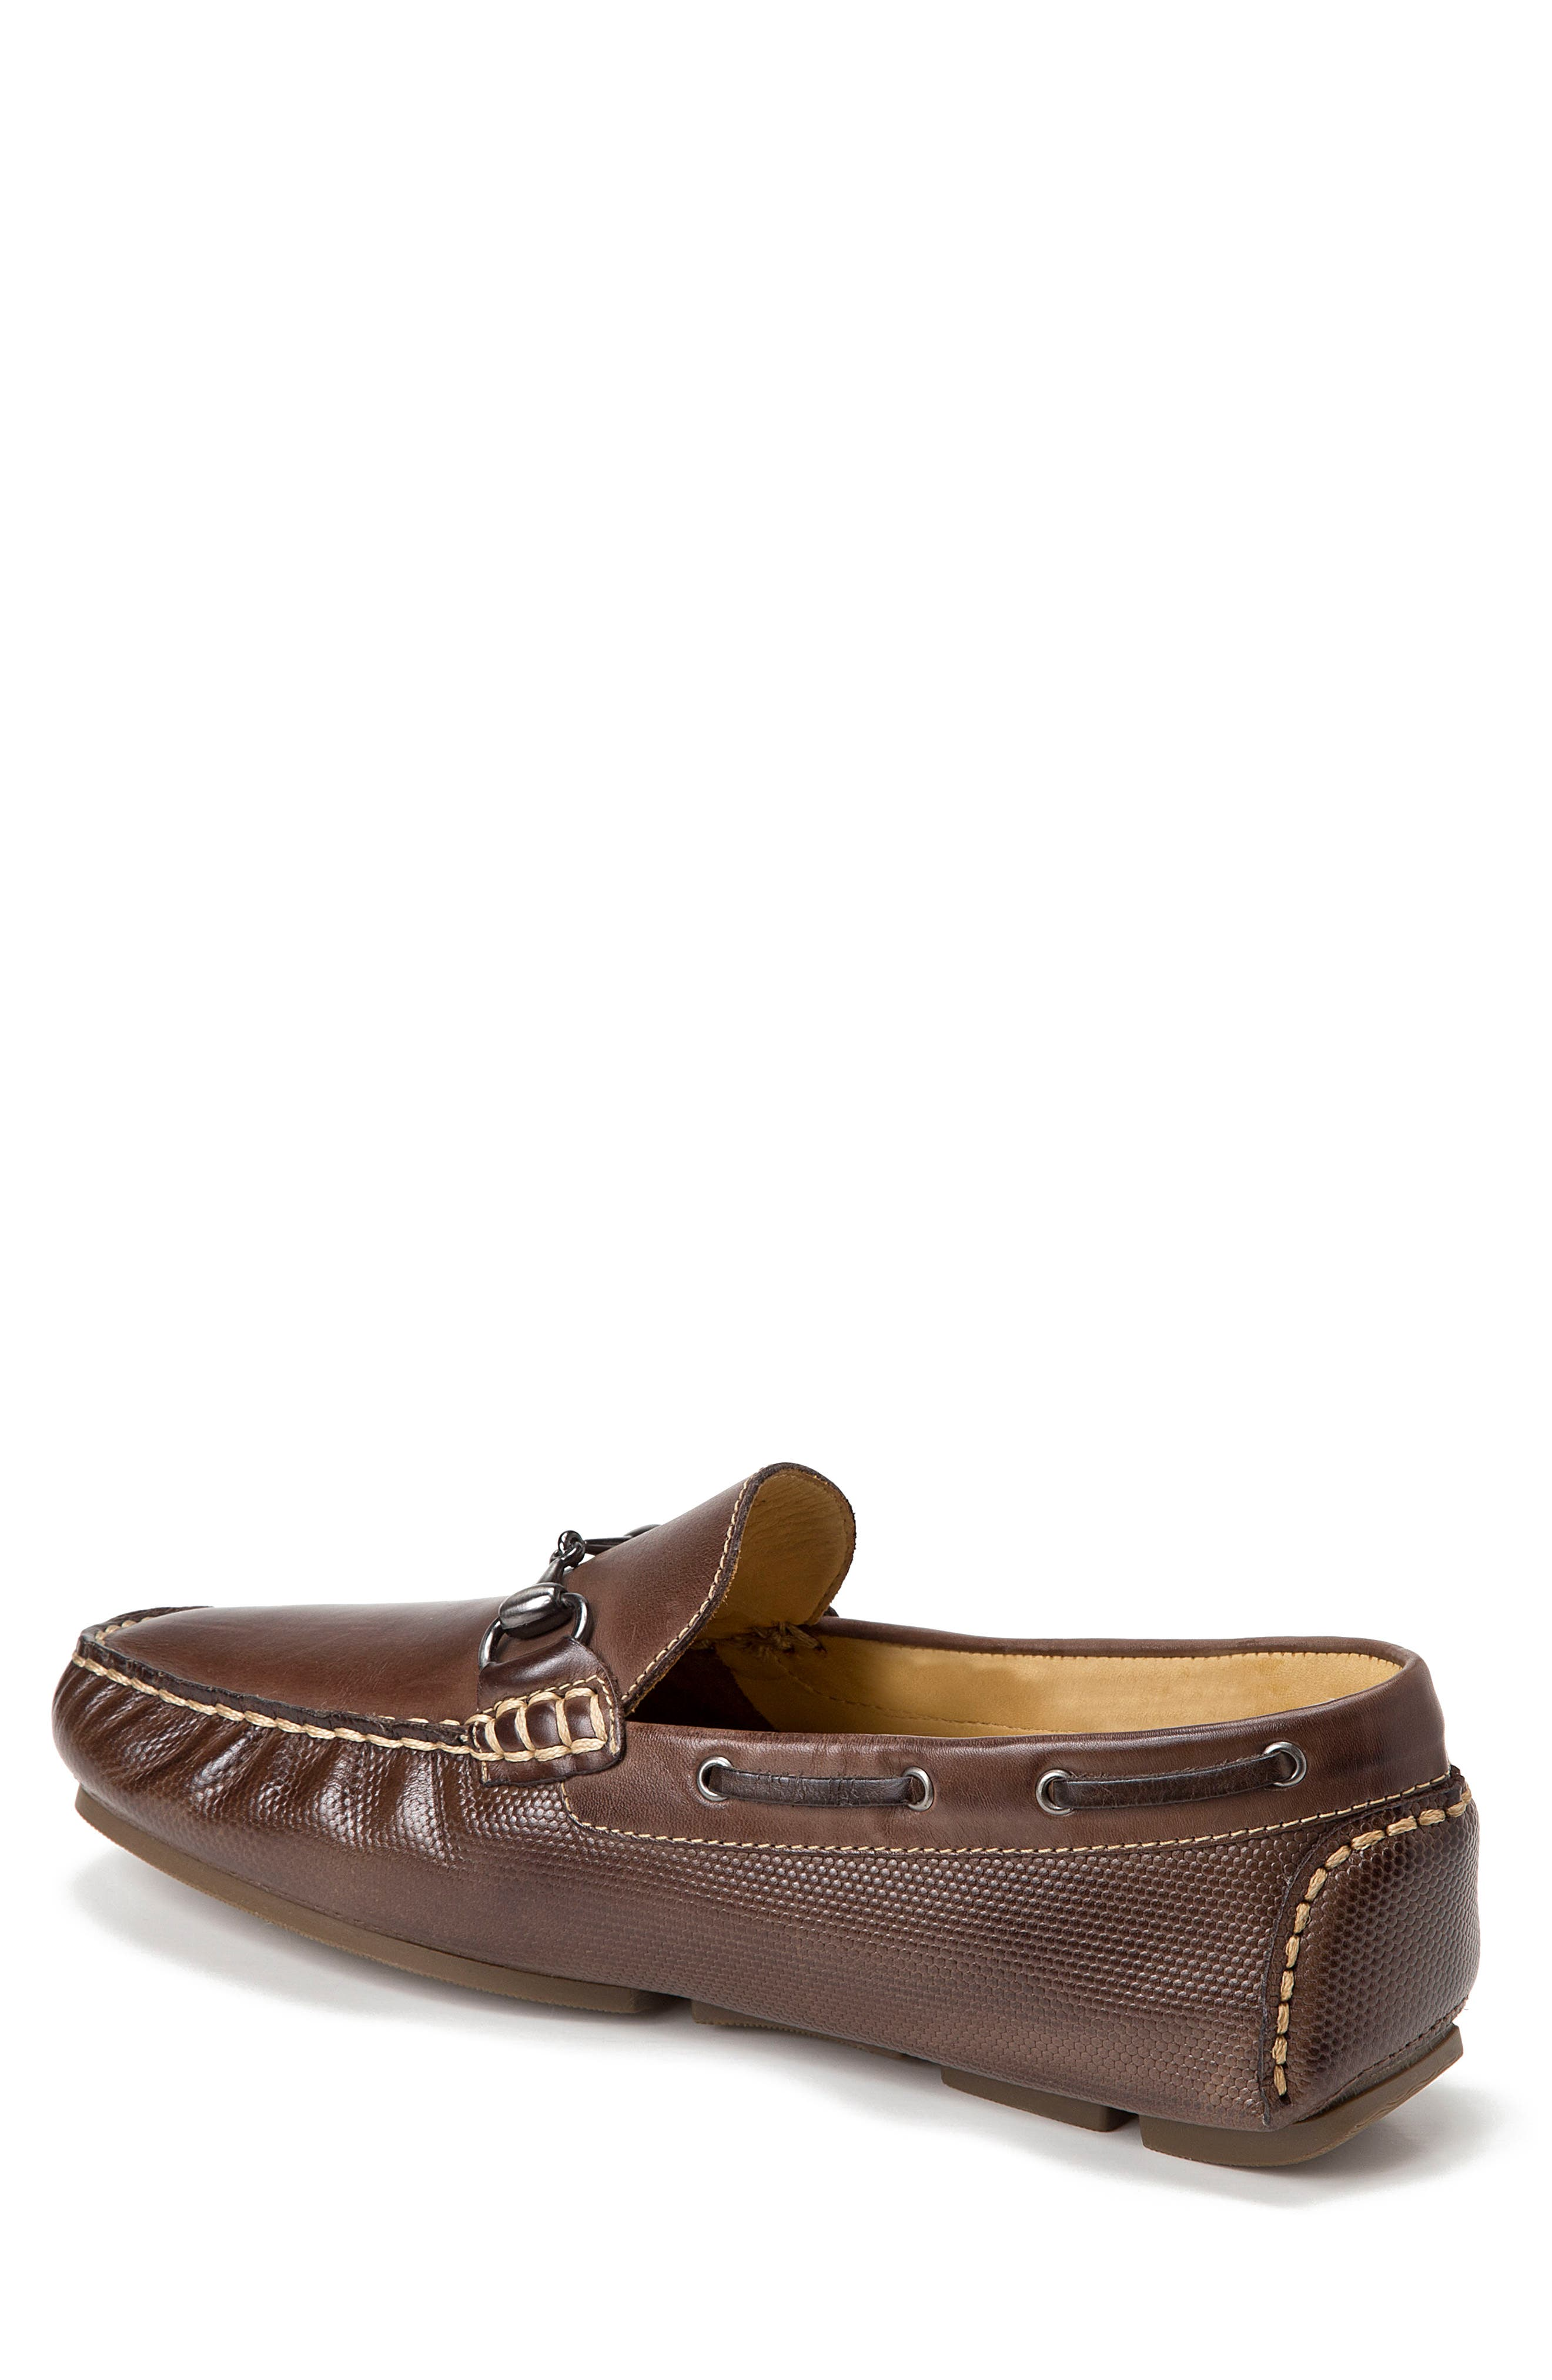 Neil Embossed Loafer,                             Alternate thumbnail 2, color,                             BROWN LEATHER